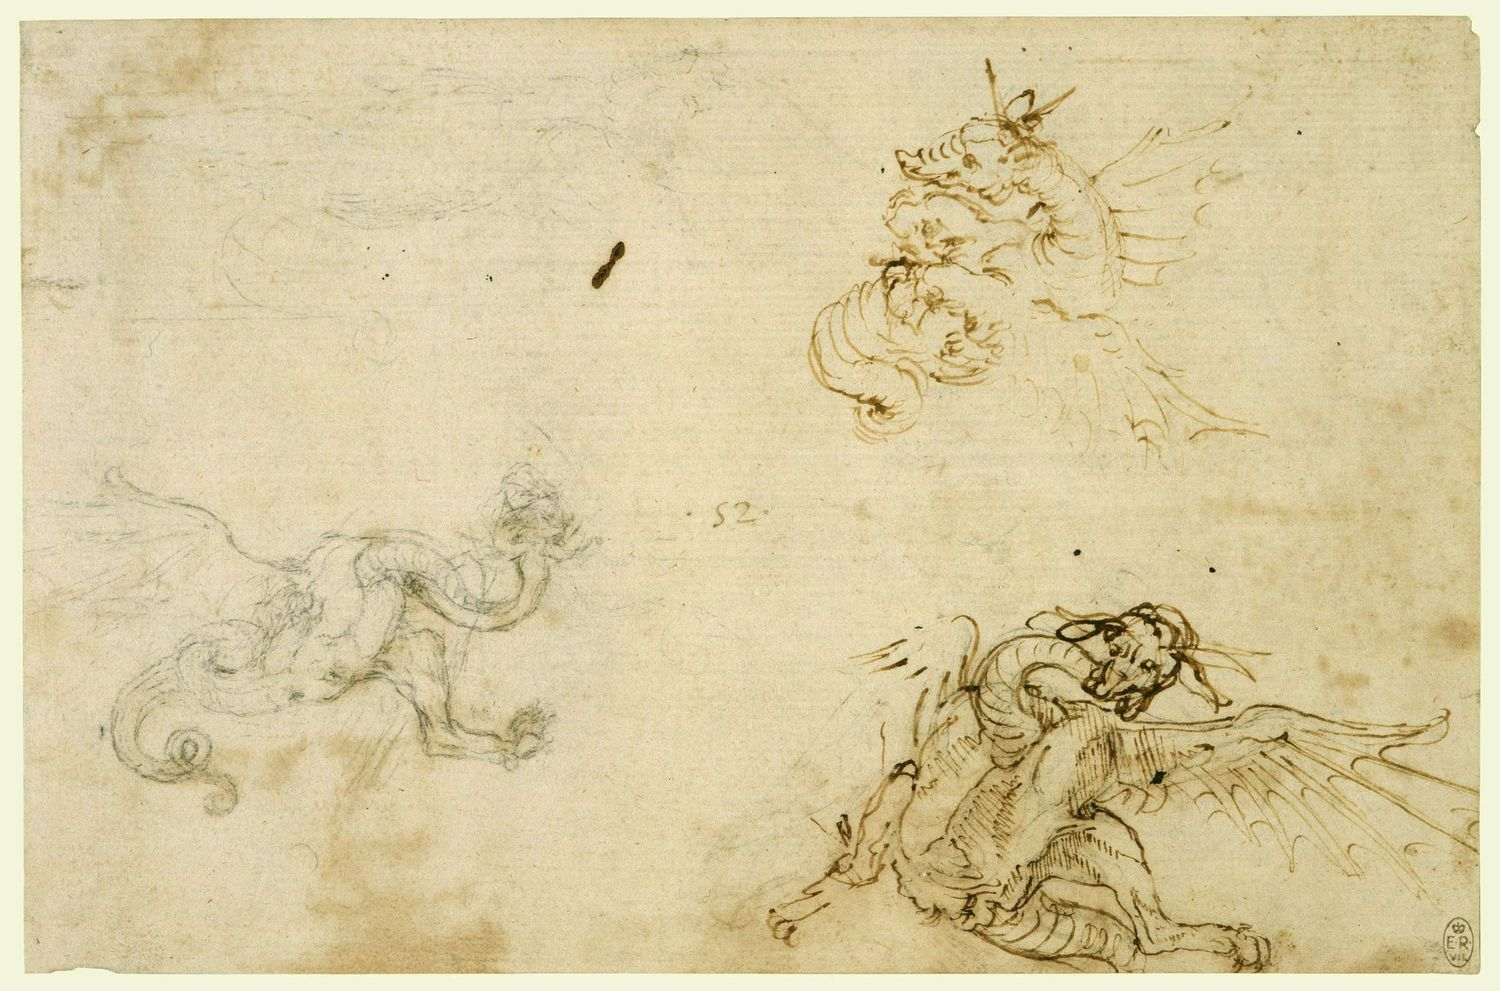 Leonardo da Vinci - Drawings - Animals - Dragons.jpg